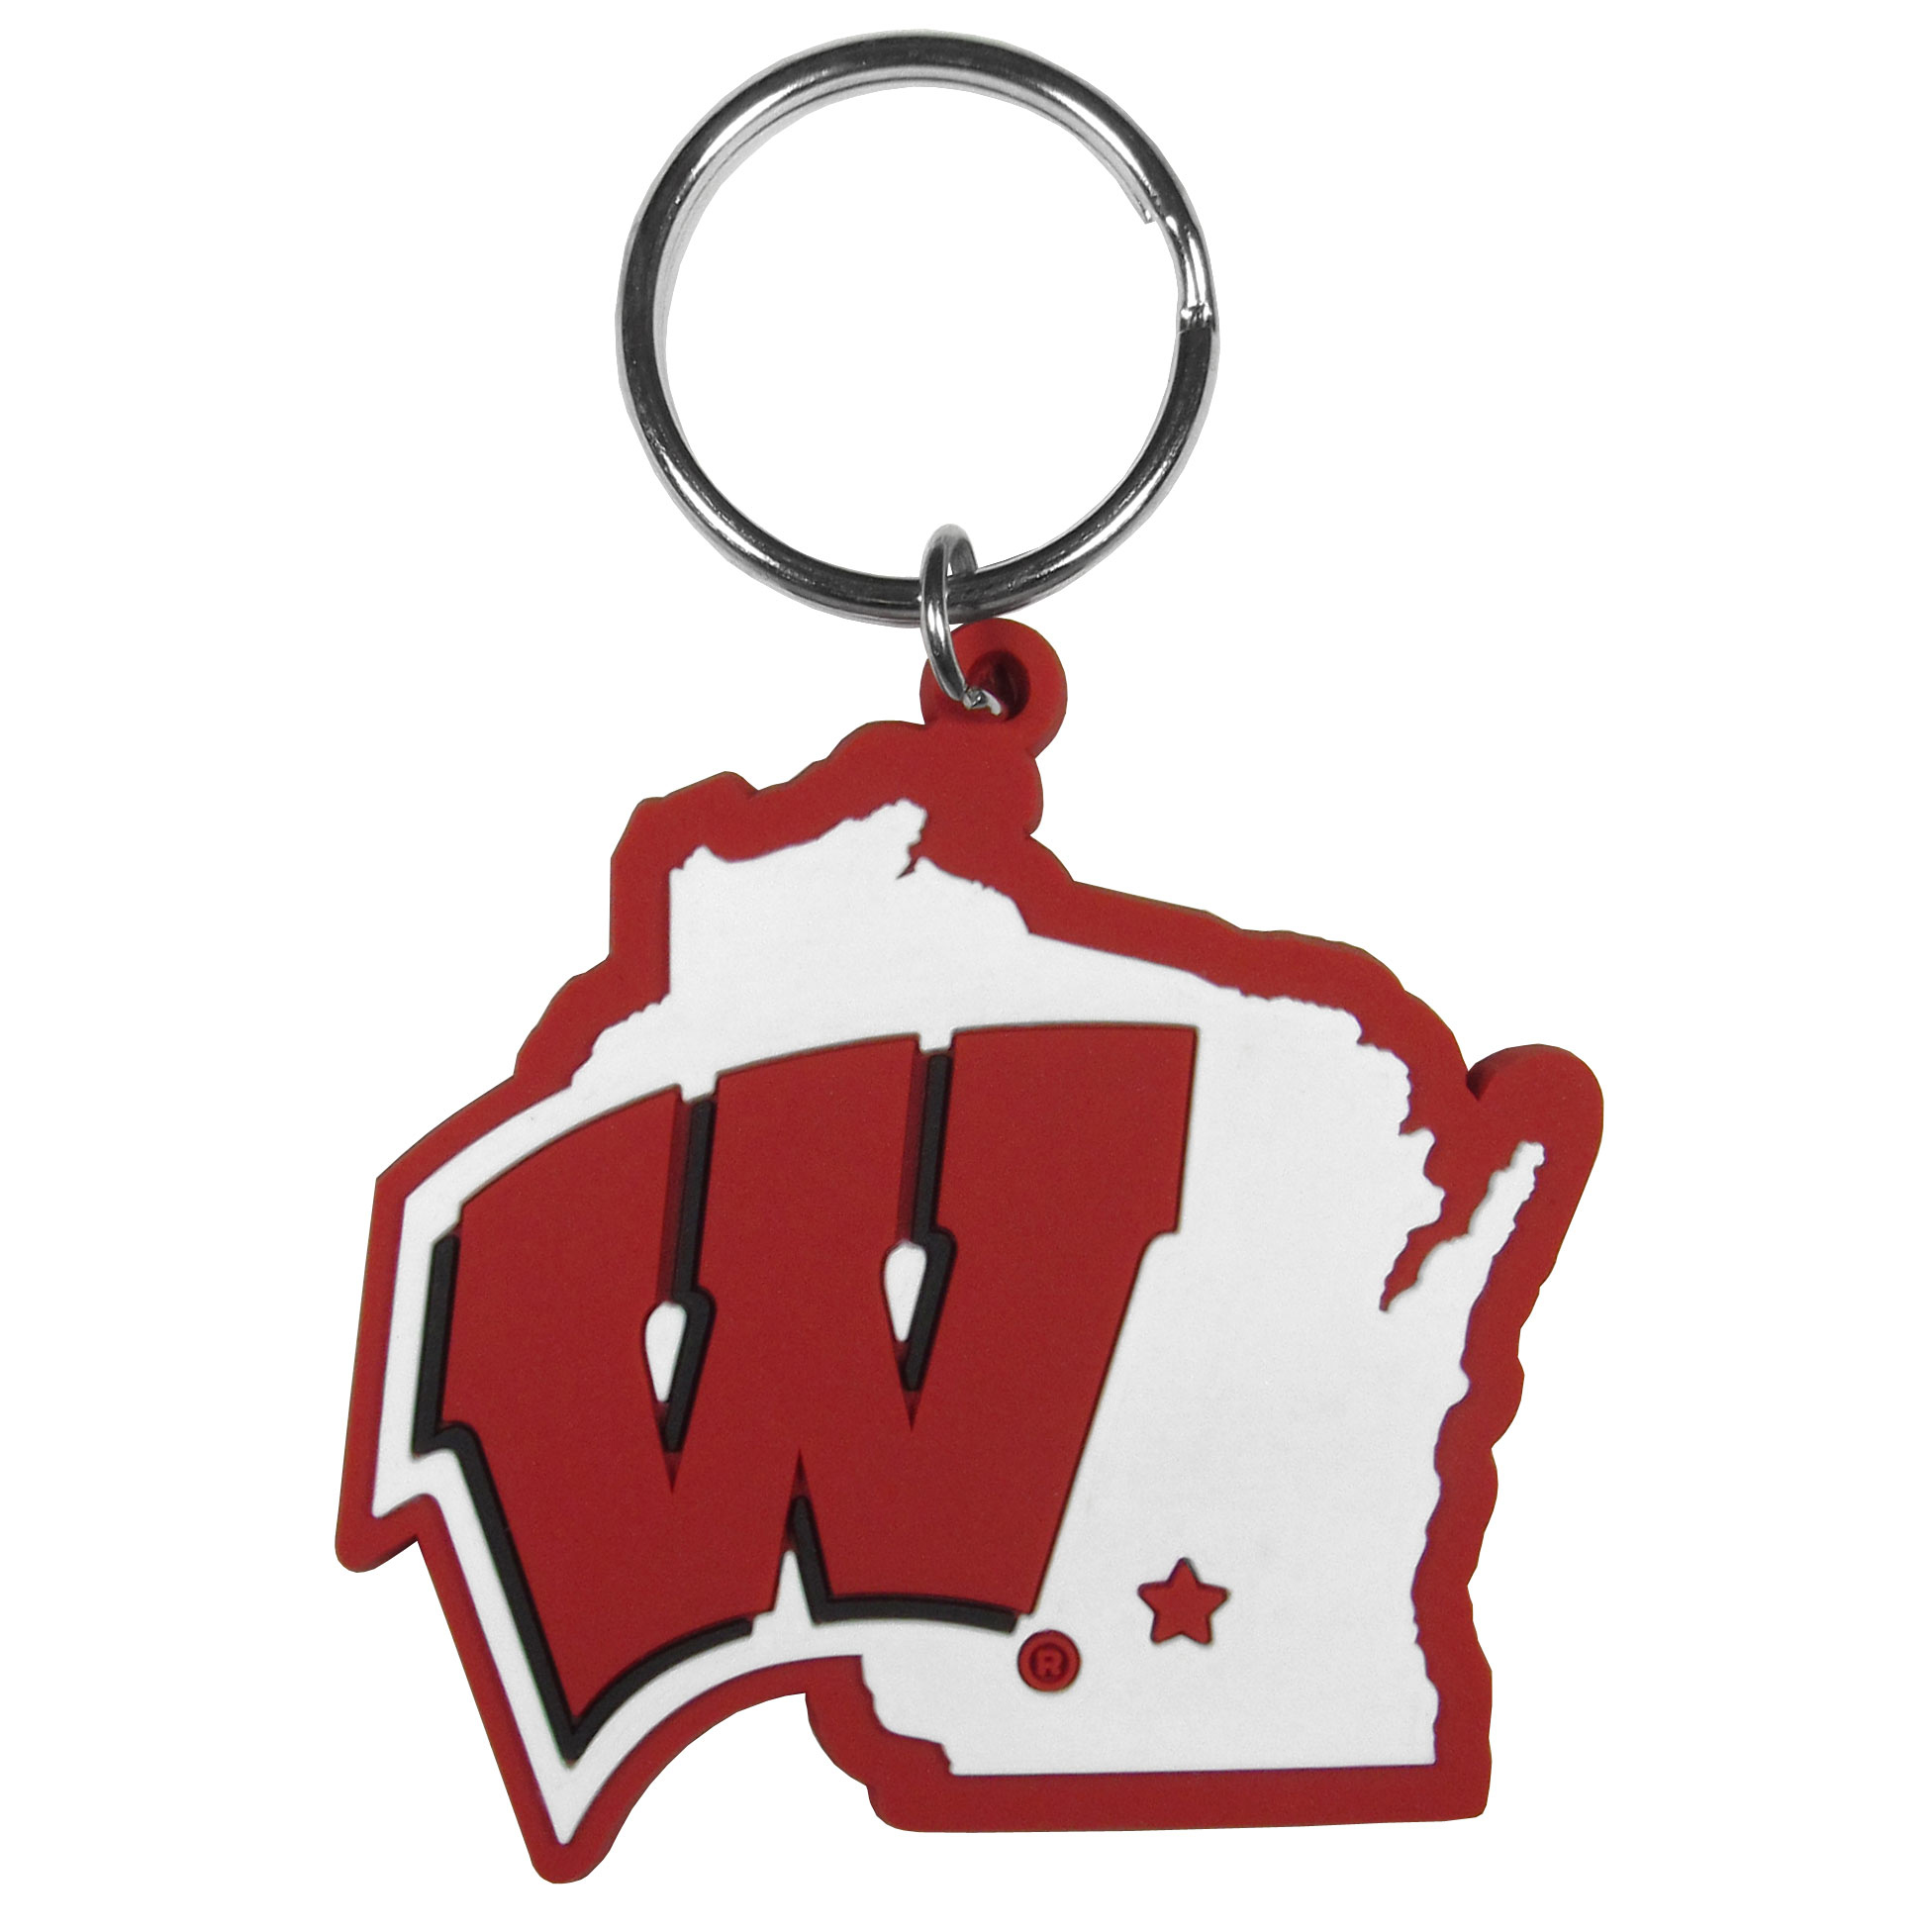 Wisconsin Badgers Home State Flexi Key Chain - Our flexible Wisconsin Badgers key chains are a fun way to carry your team with you. The pliable rubber material is extremely durable and the layered colors add a great 3D look to the key chain. This is really where quality and a great price meet to create a true fan favorite.